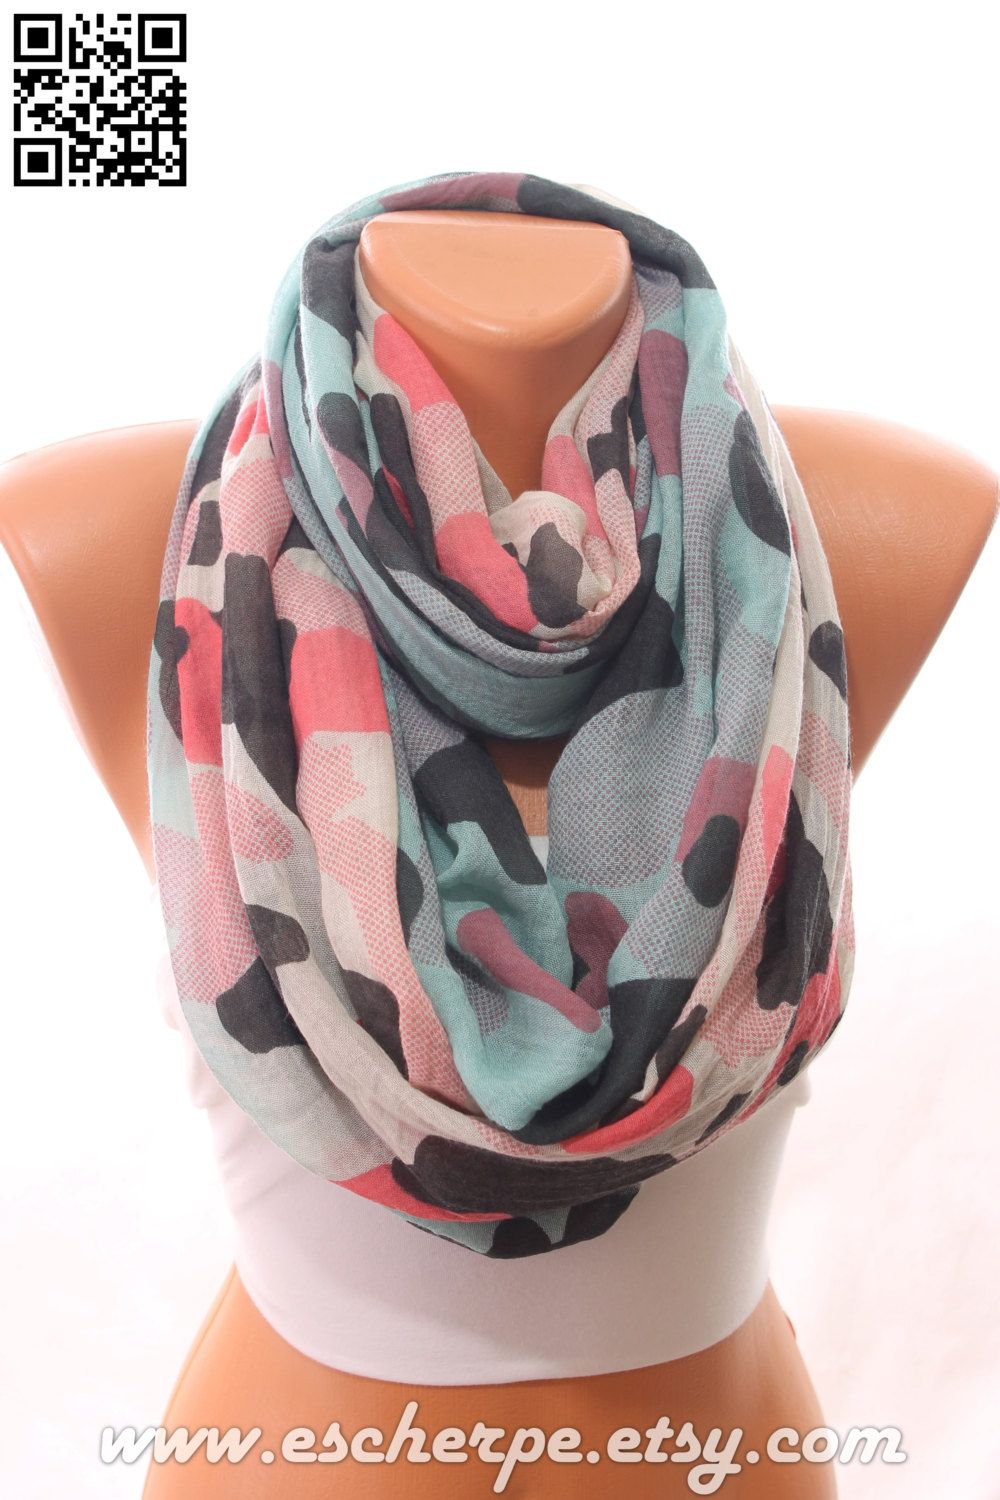 Camo scarf millitary scarf lightweight spring summer scarf infinity camo scarf millitary scarf lightweight spring summer scarf infinity scarf women fashion accessories scarves easter gift ideas for her him negle Gallery